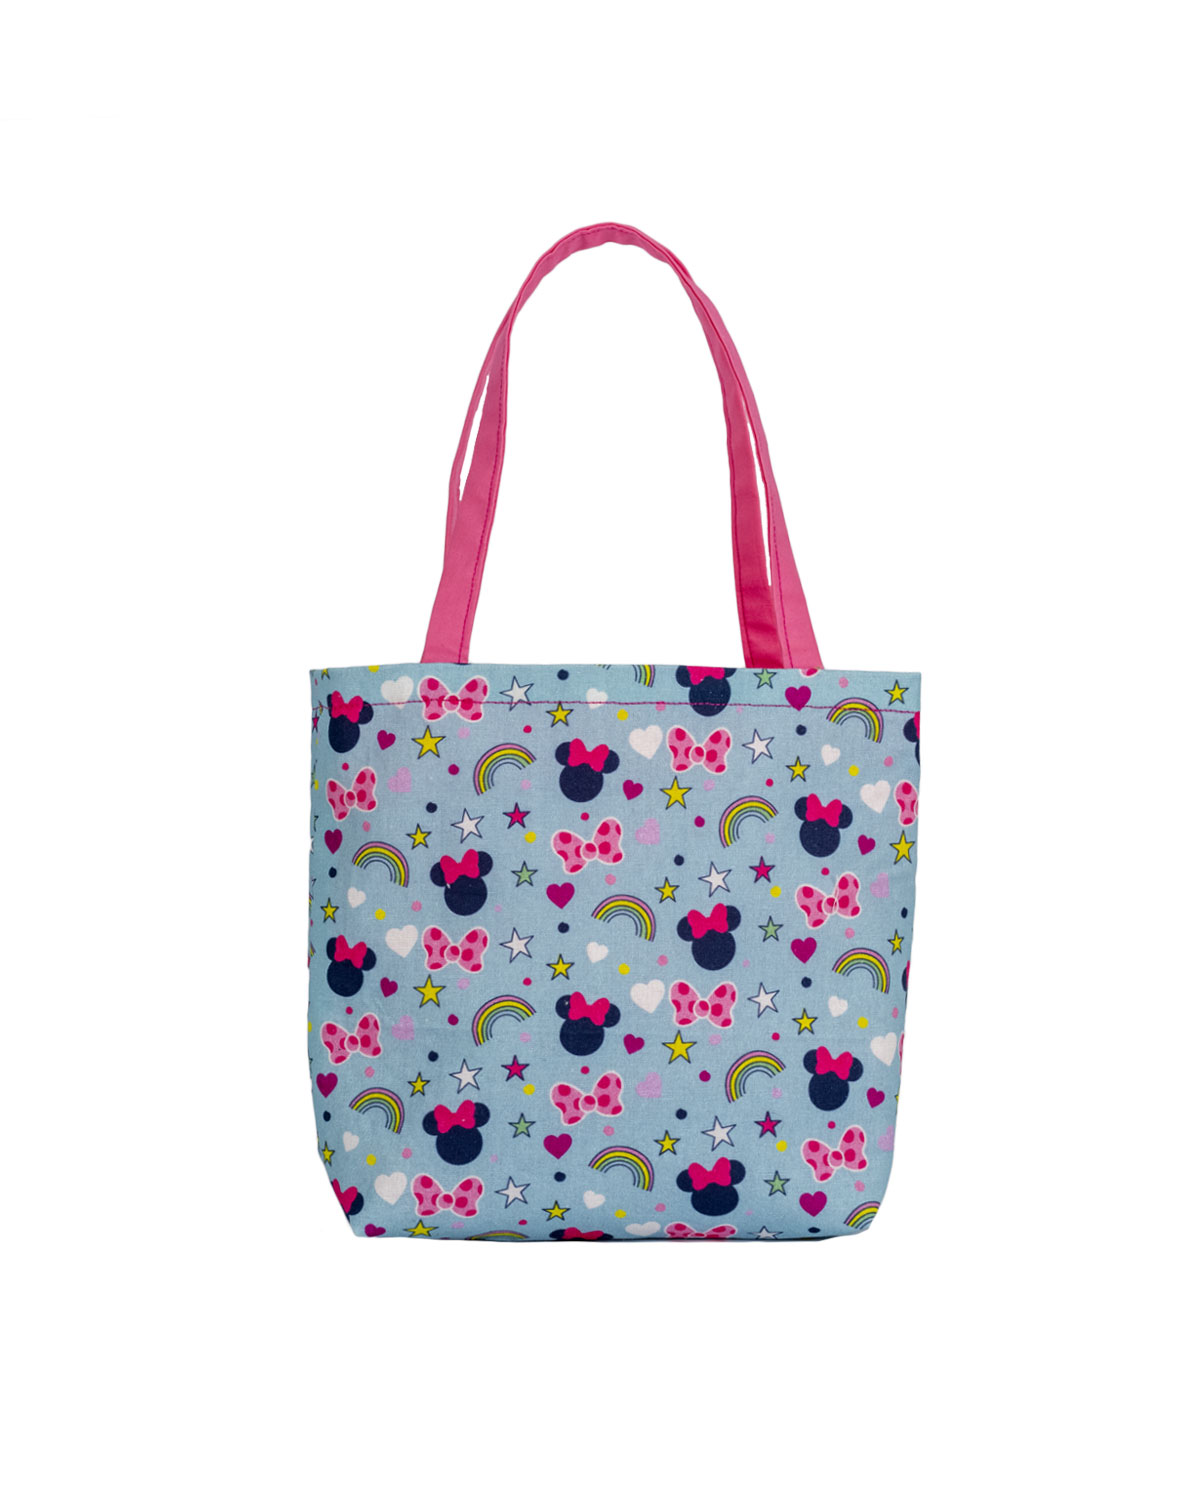 Minnie-Mouse-Blue-Tote-Bag-Childrens